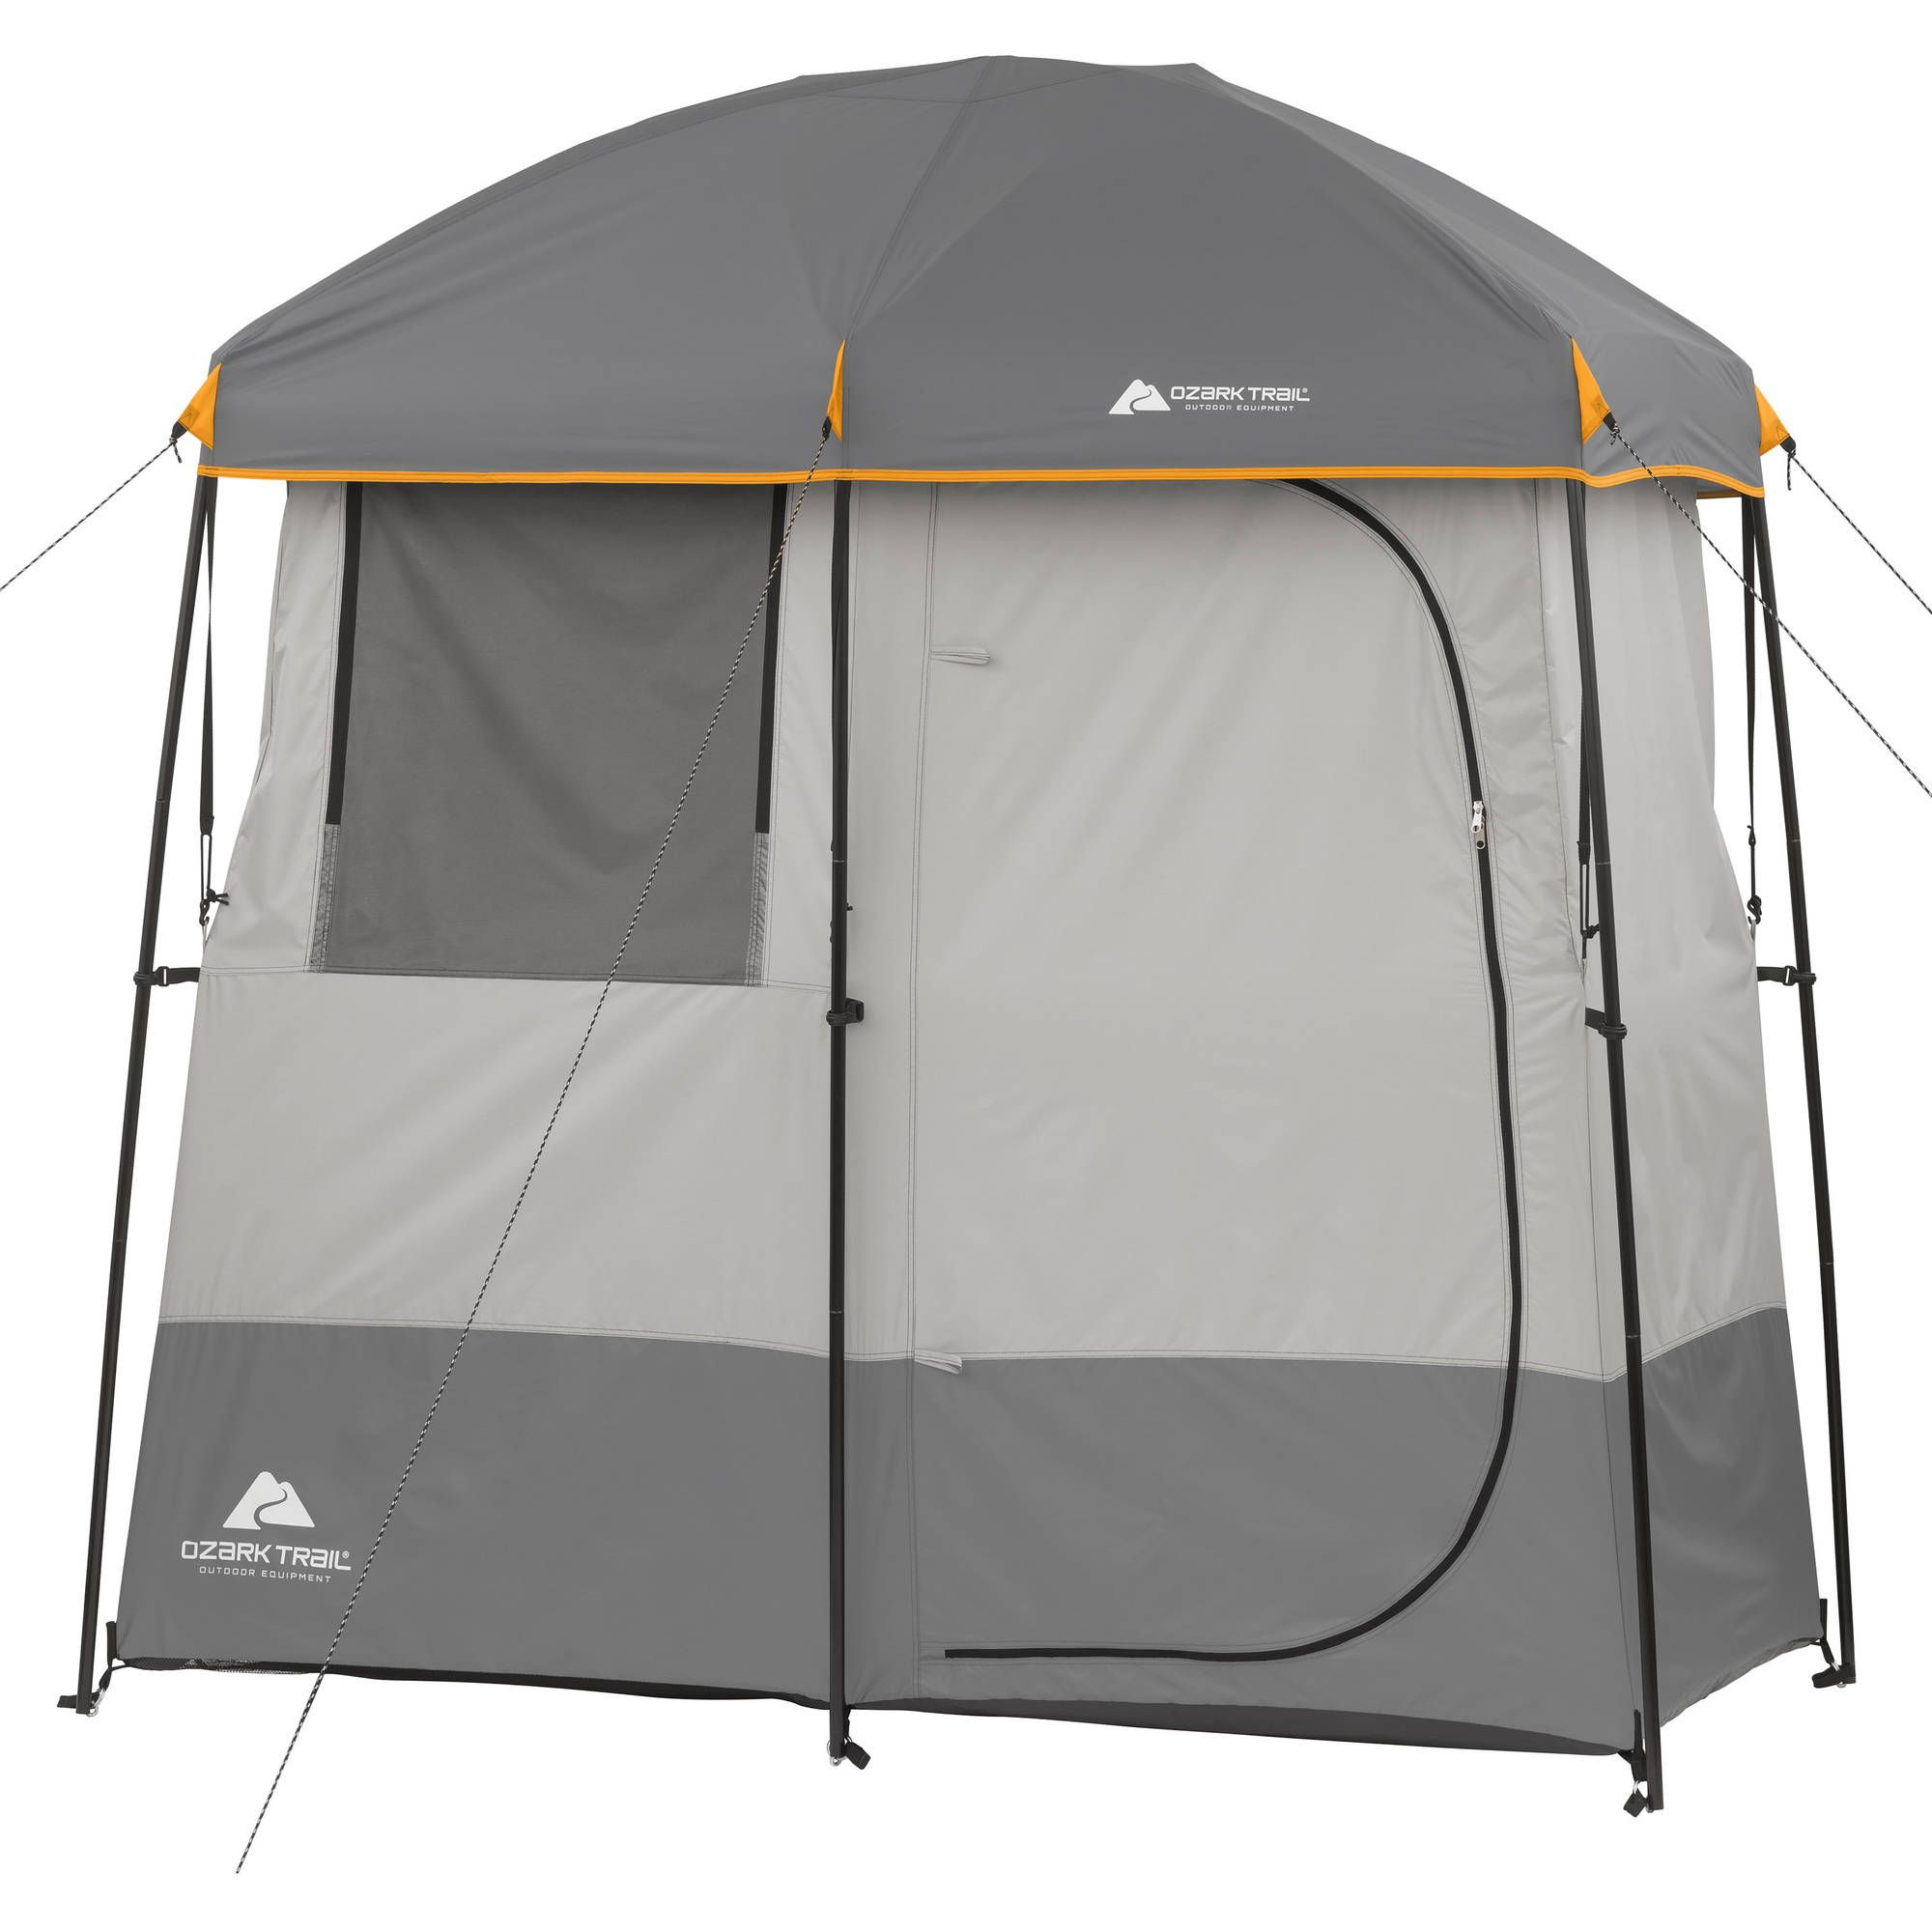 Health With Images Shower Tent Camping Shelters Camping Shower